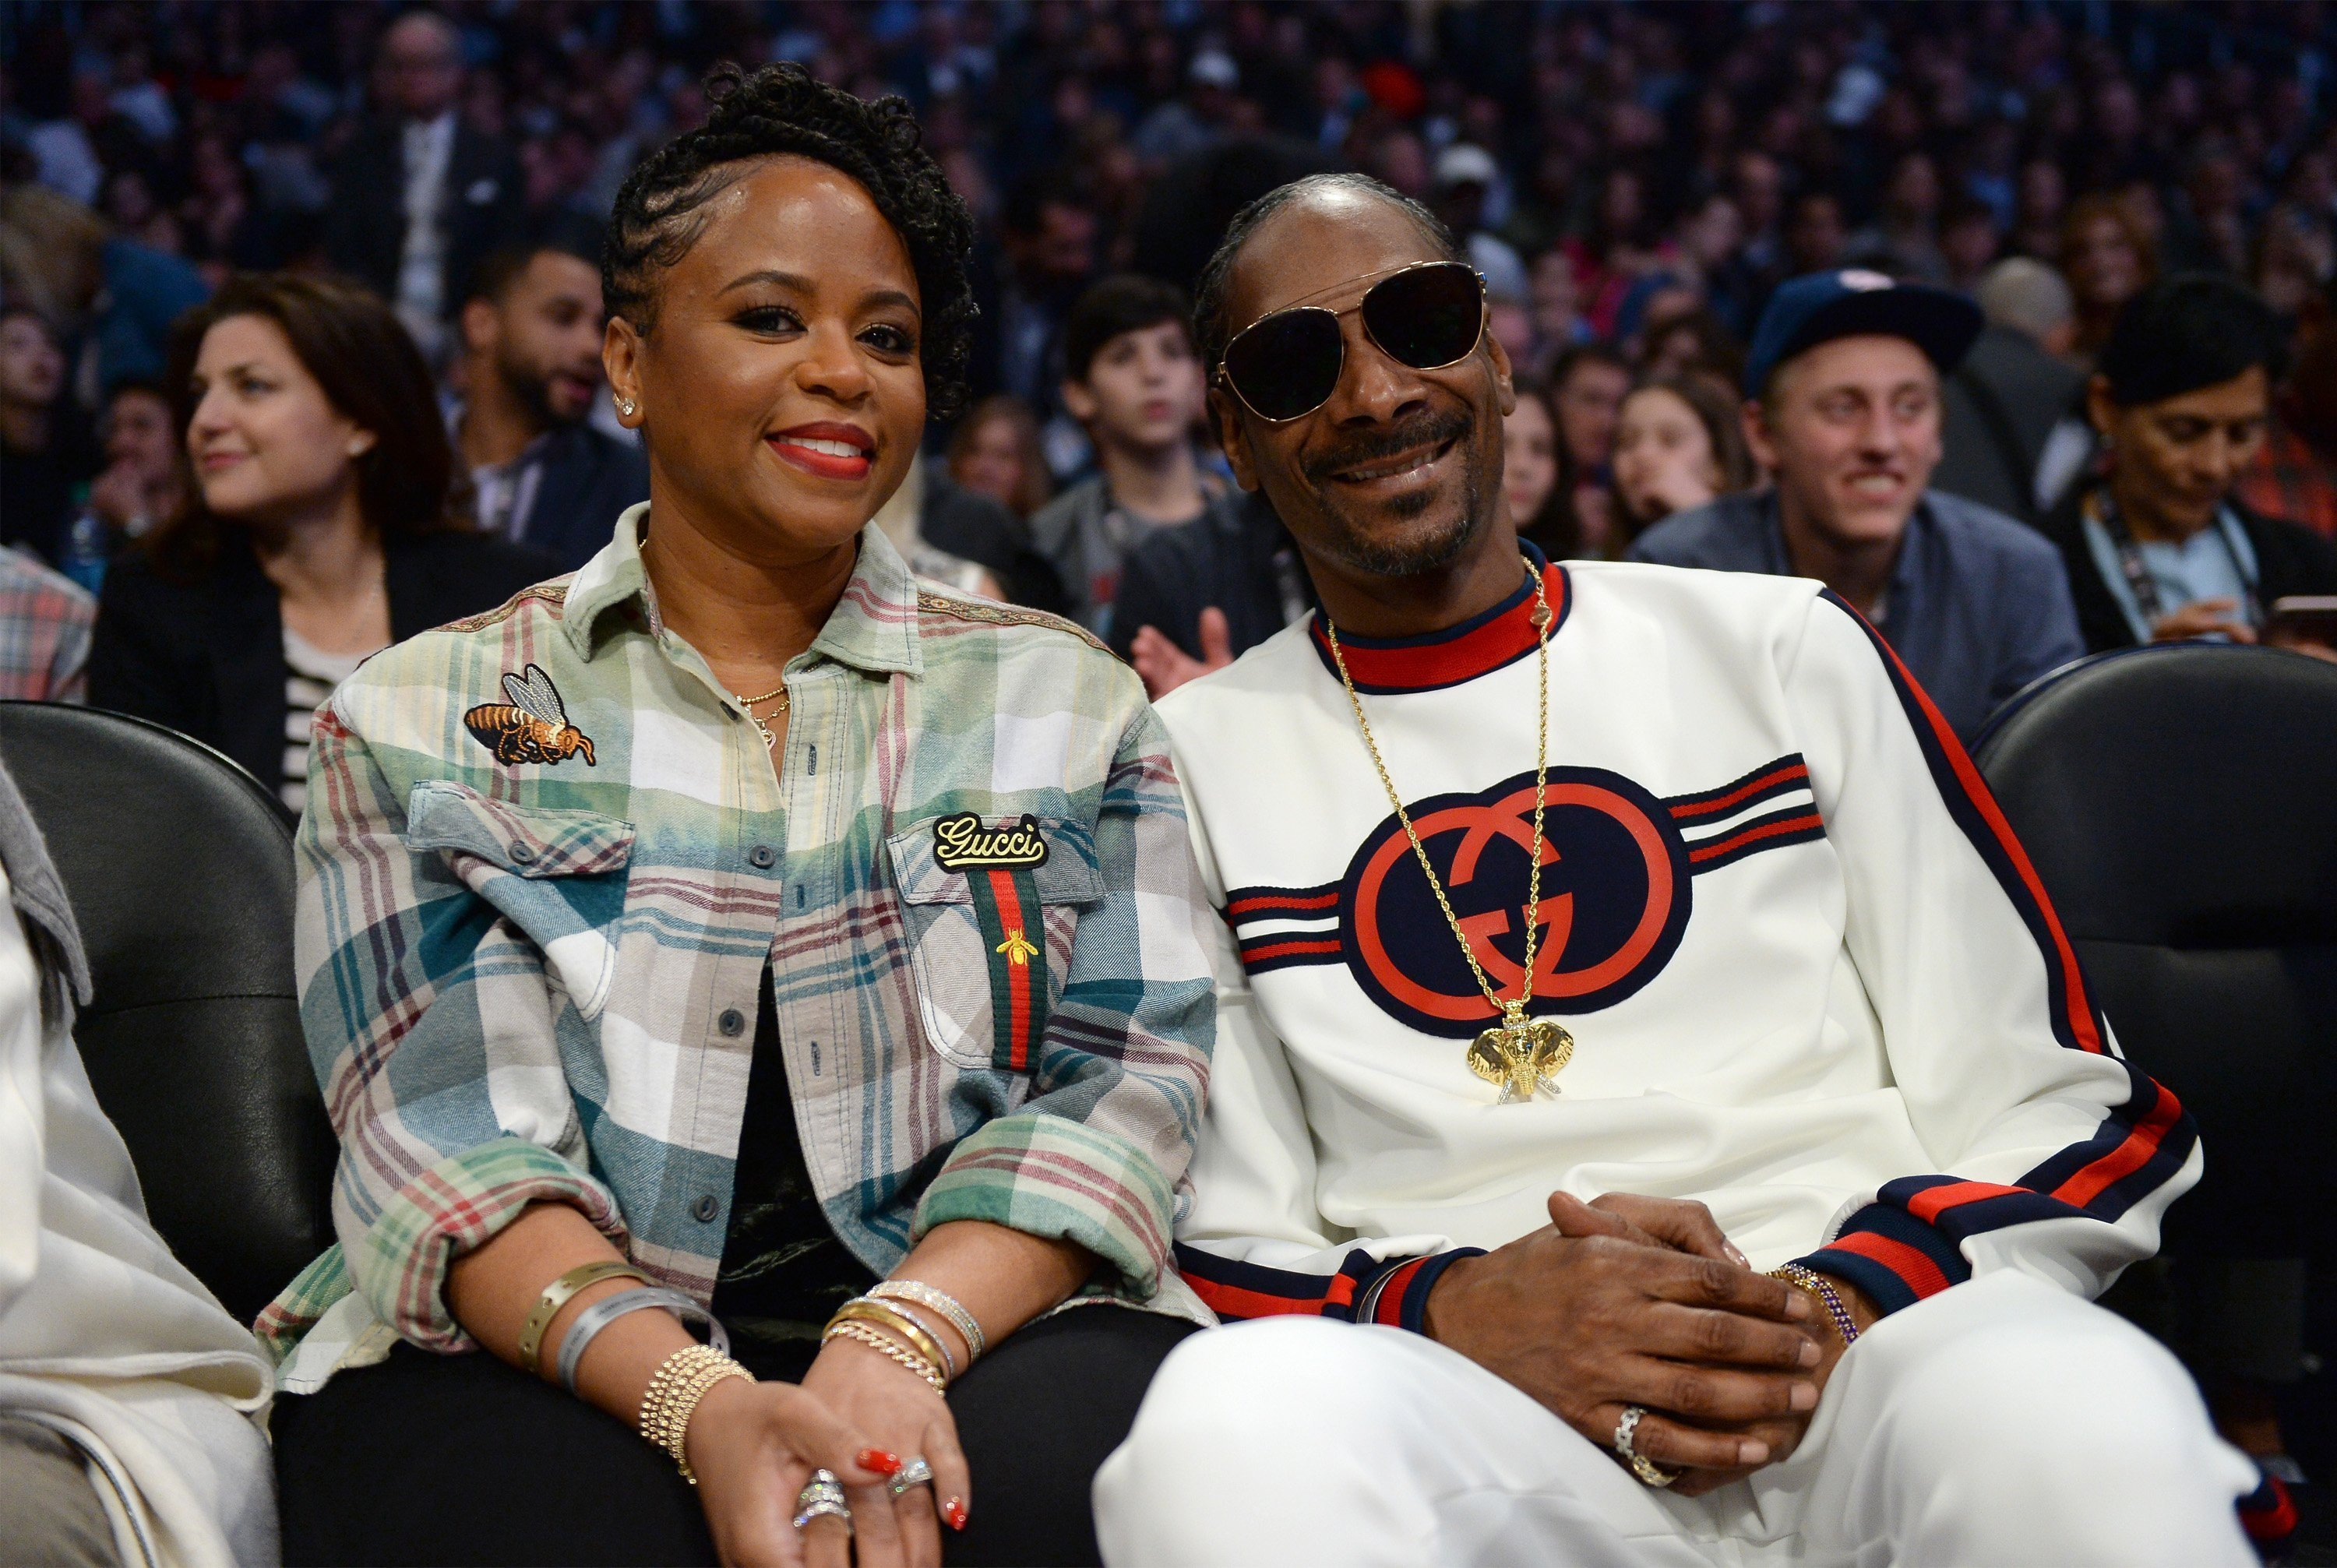 Snoop Dogg and wife Shante attend the NBA All-Star Game 2018 at Staples Center on February 18, 2018. | Photo: GettyImages